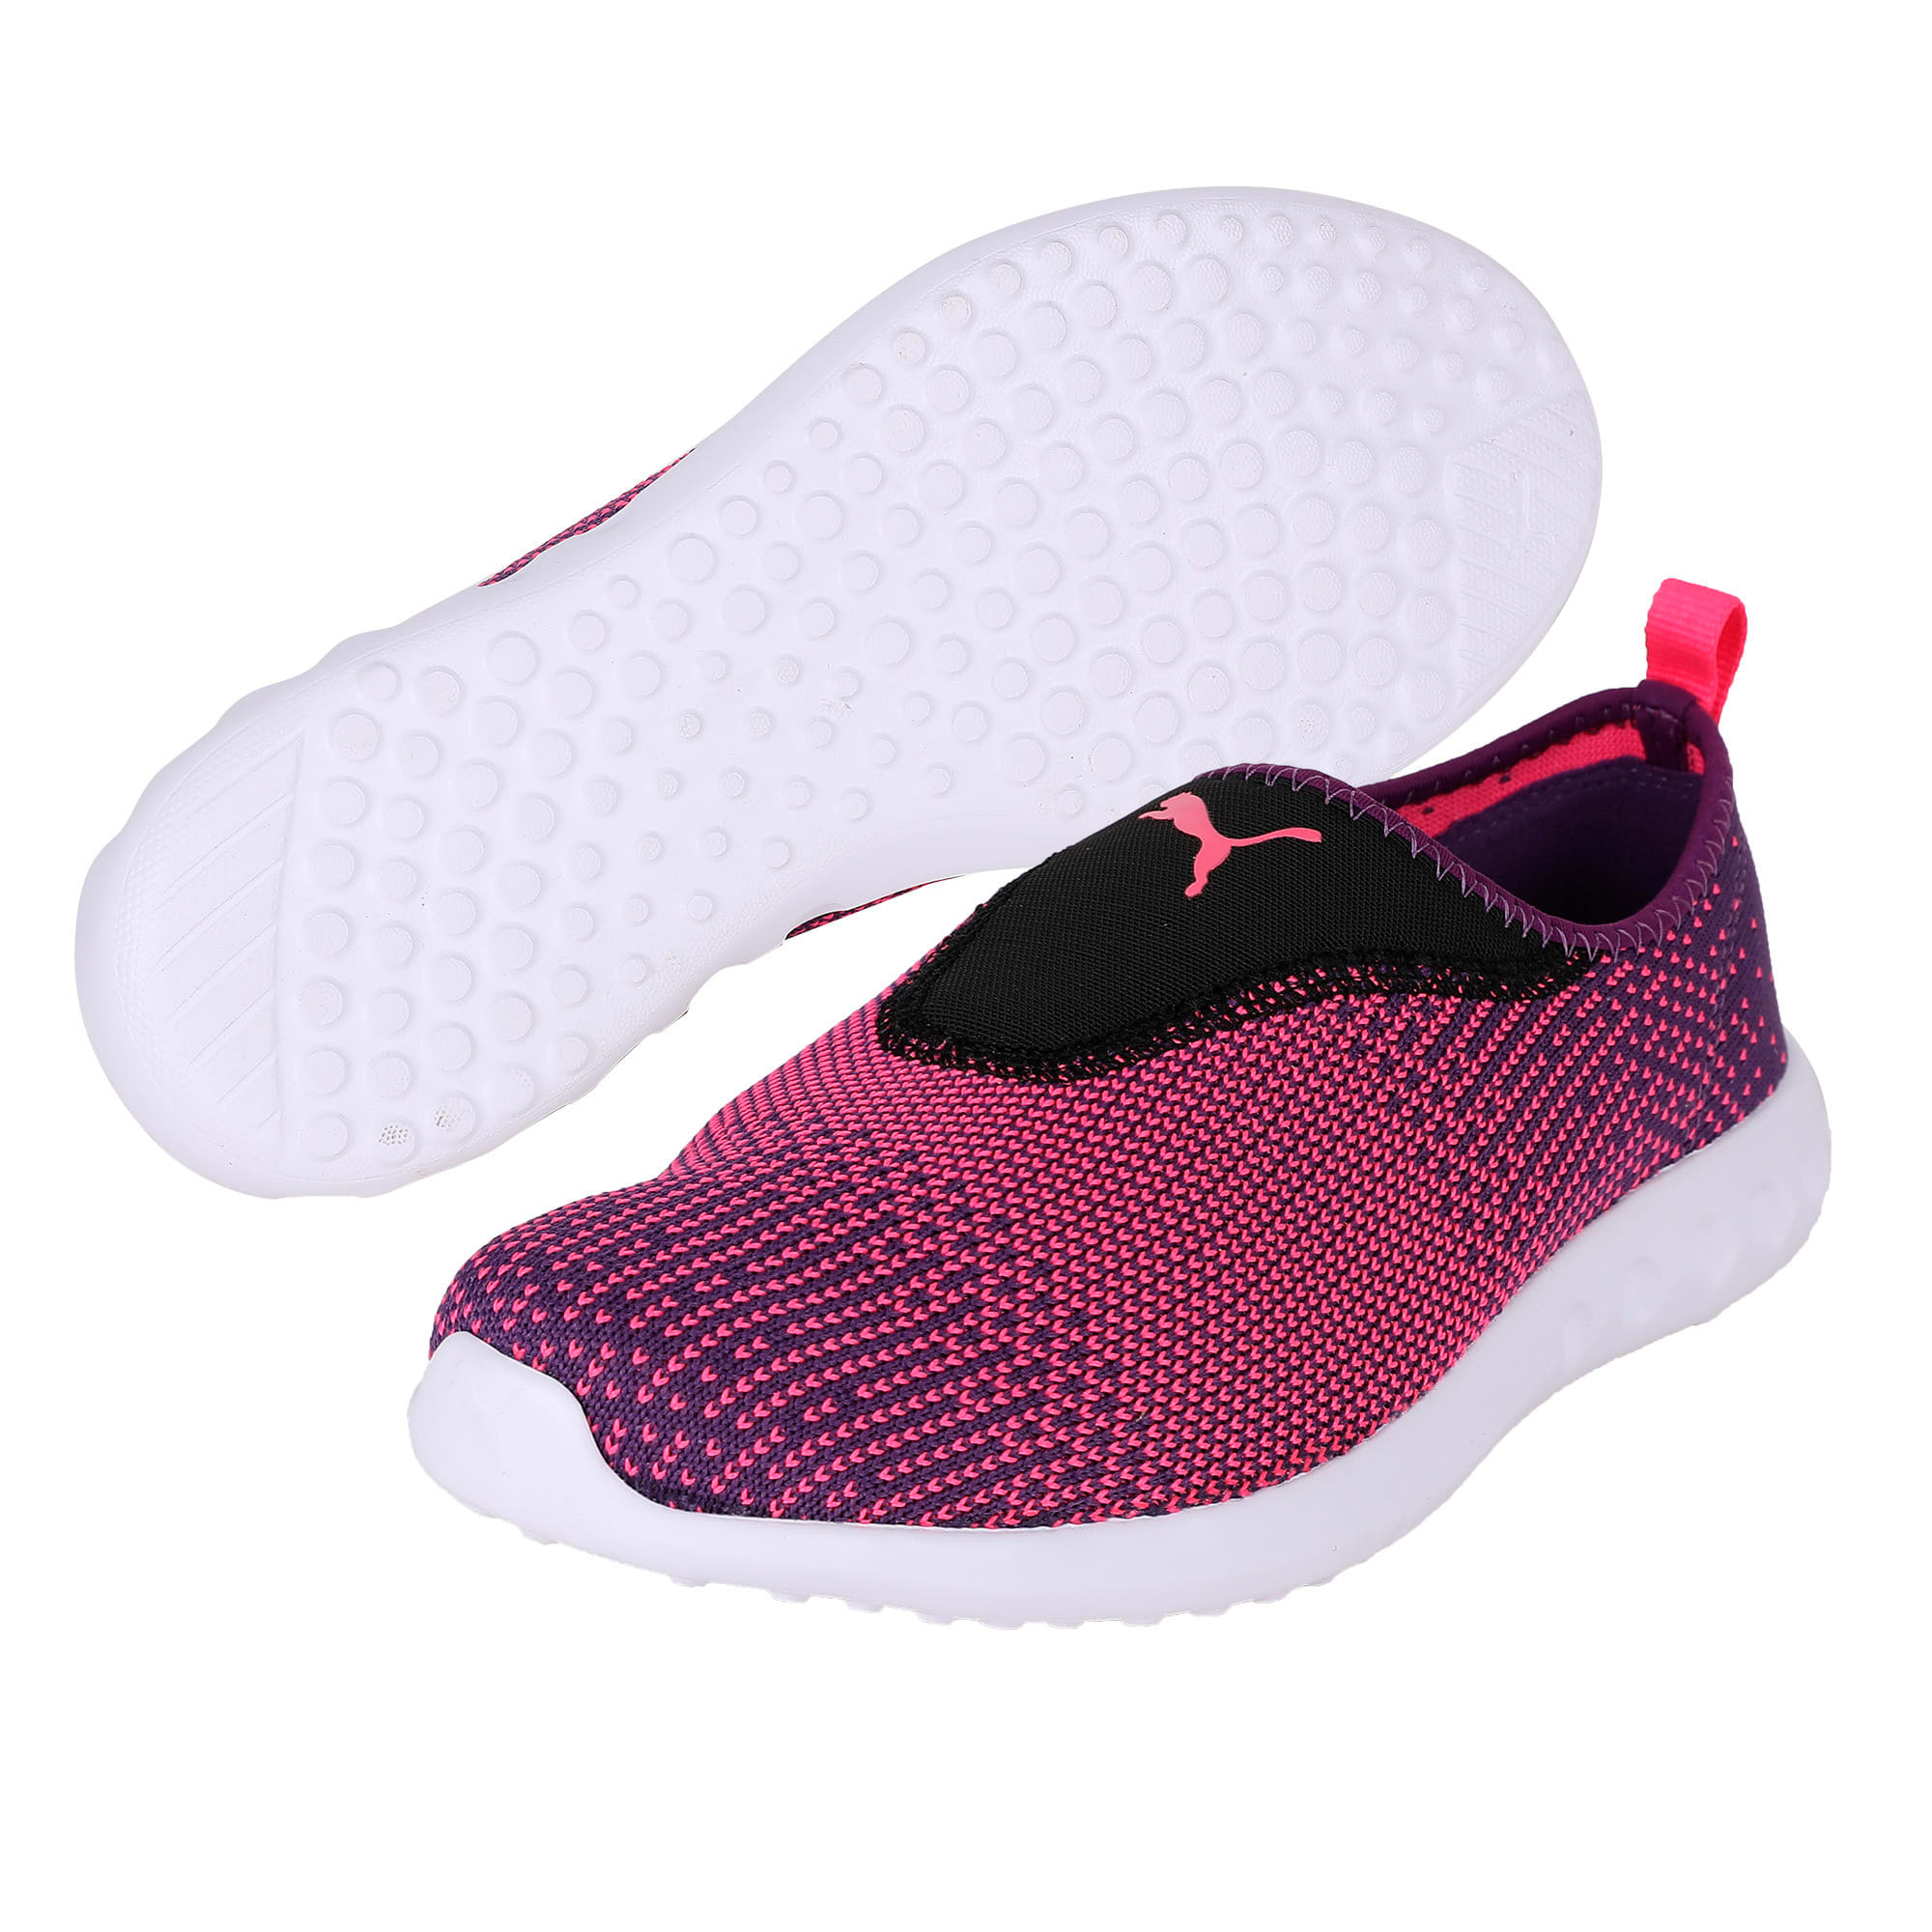 Thumbnail 1 of Carson 2 Slip-On Wn s IDP, Majesty-KO PINK-Puma White, medium-IND